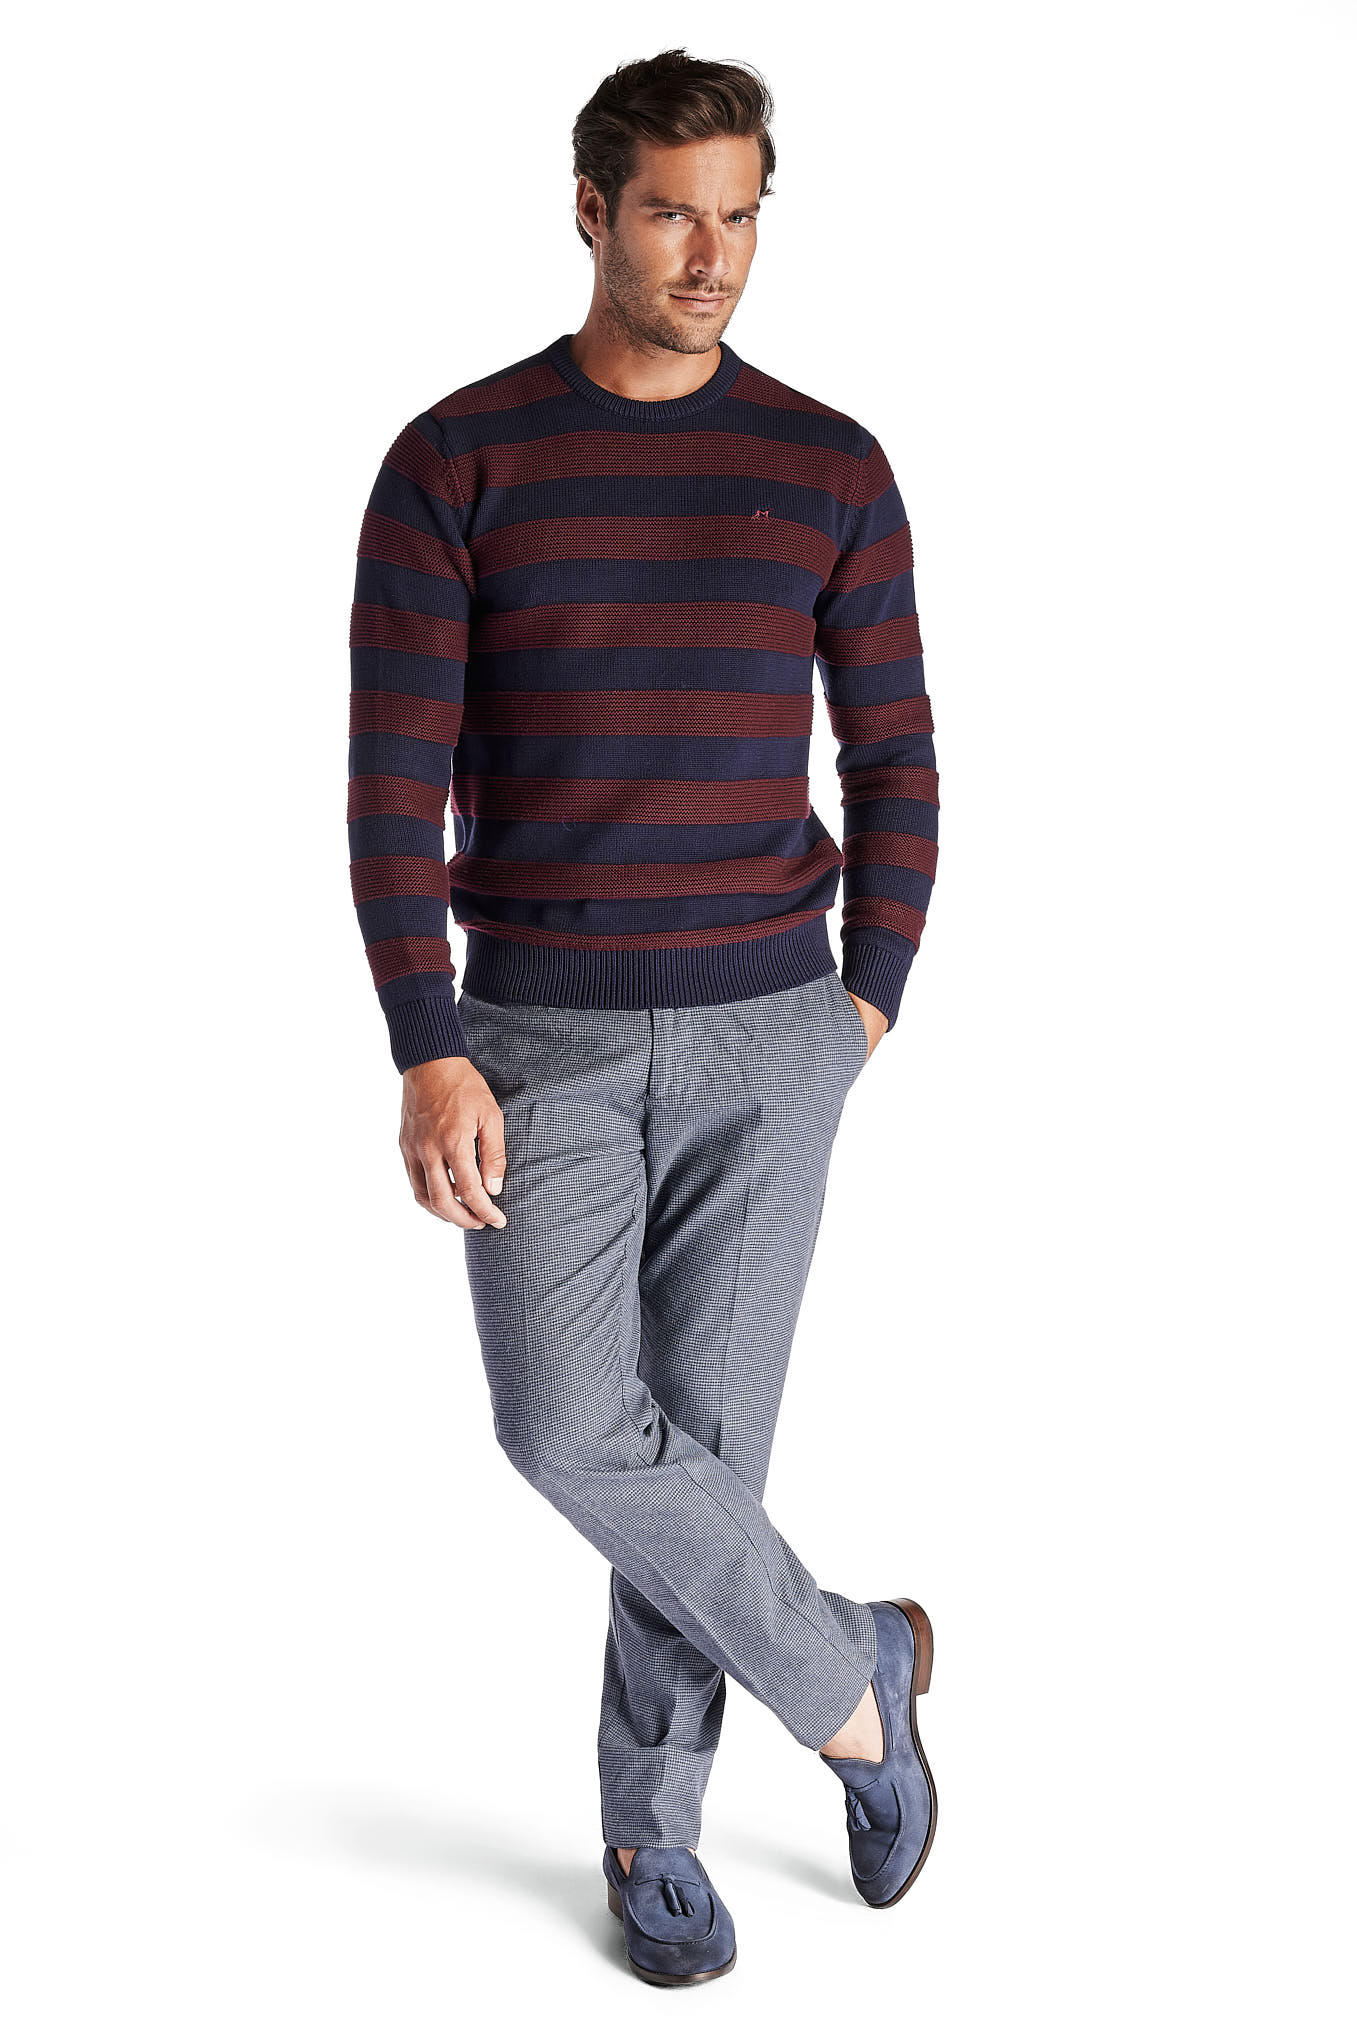 Sweater Stripes Casual Man